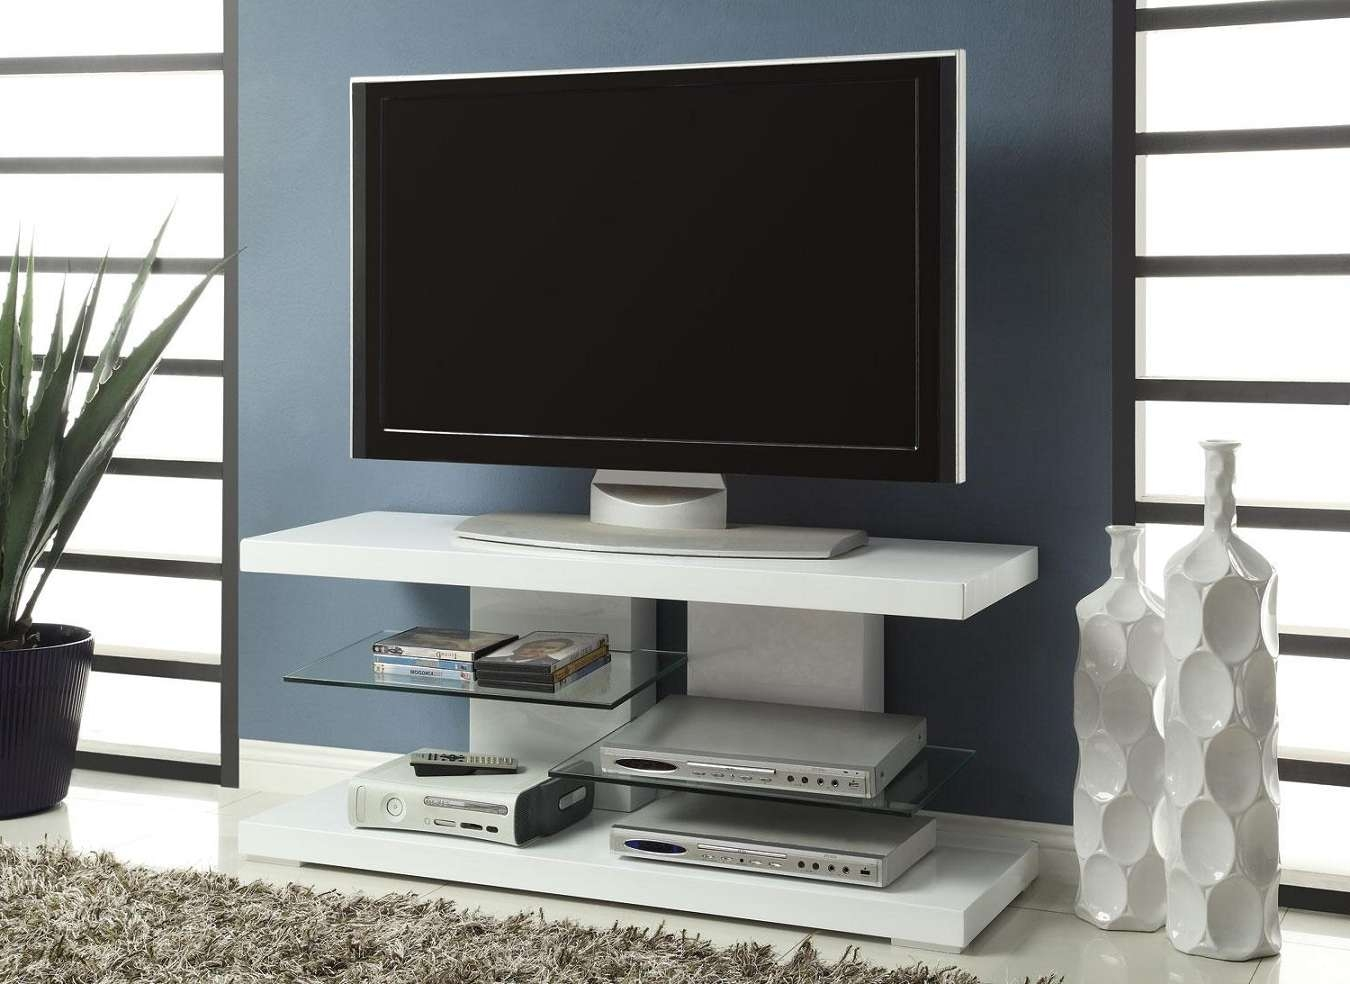 White Painted Plywood Flat Screen Tv Stand With Tempered Glass Intended For Modern Tv Cabinets For Flat Screens (View 15 of 20)